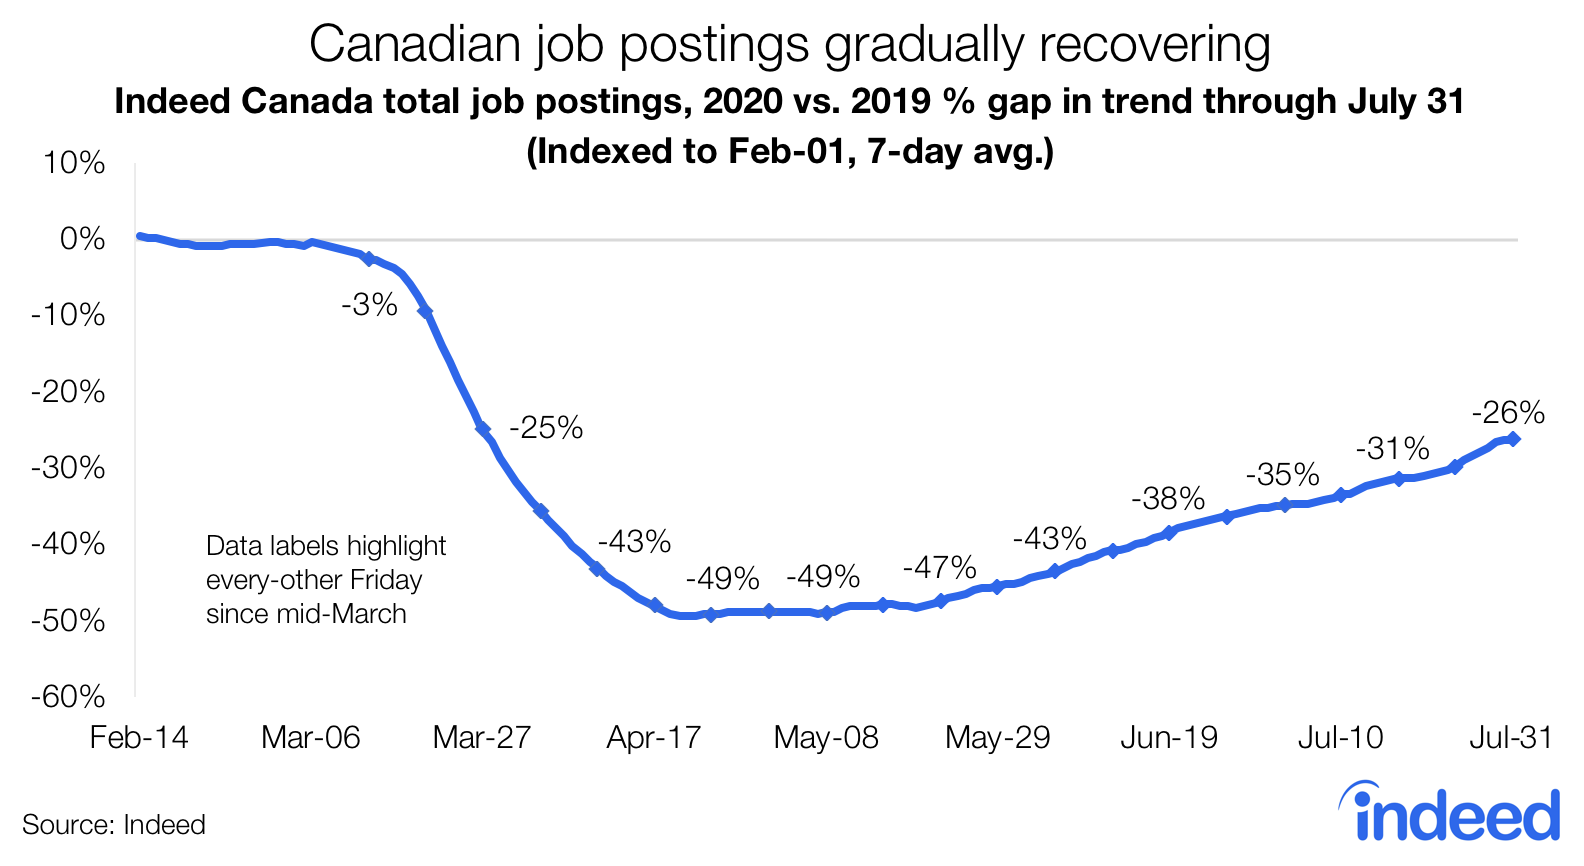 Canadian job postings gradually recovering